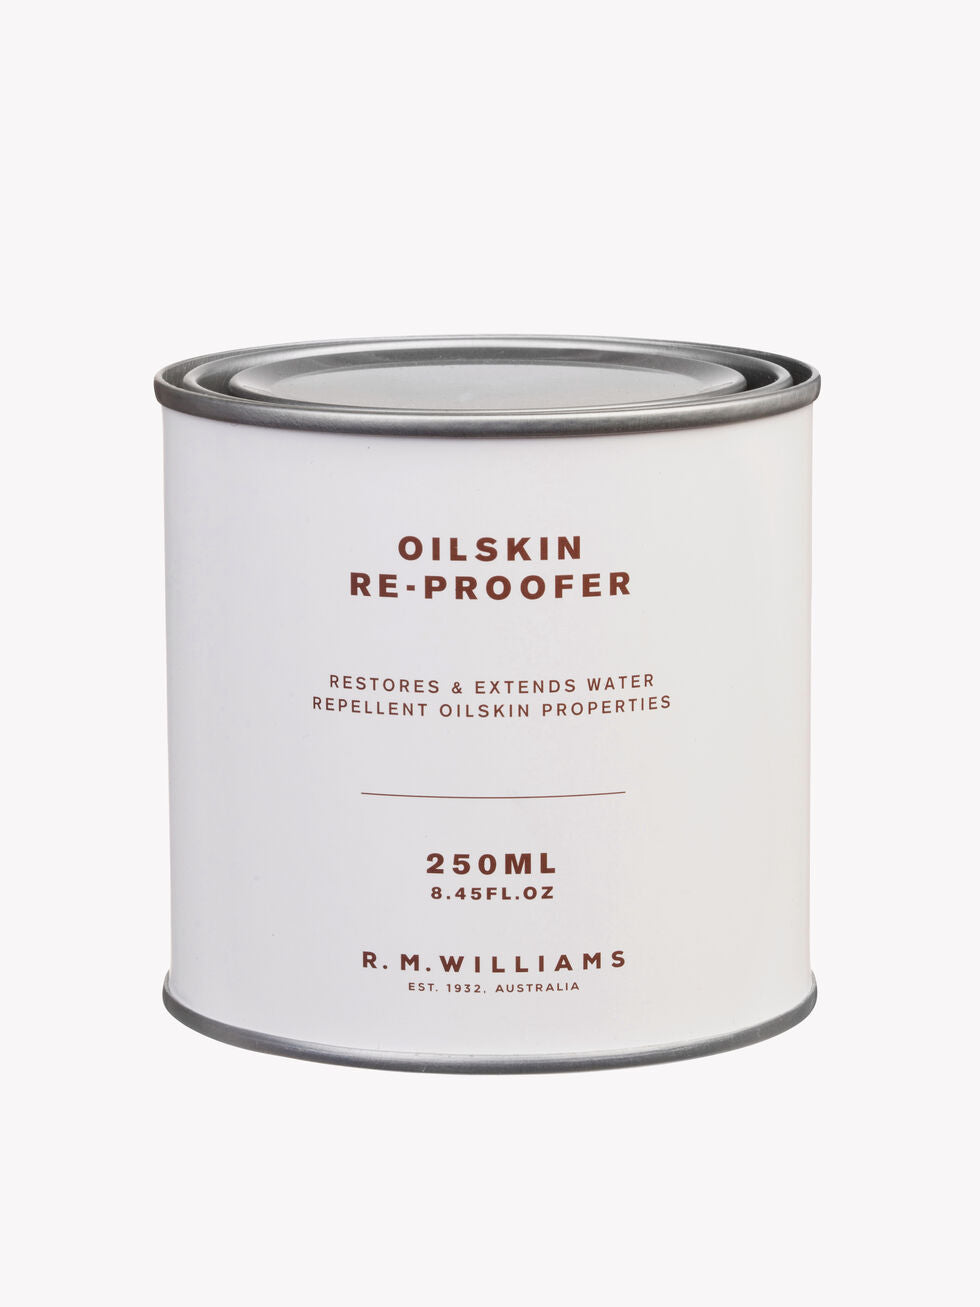 R.M.Williams Oilskin Re-Proofer 250ml